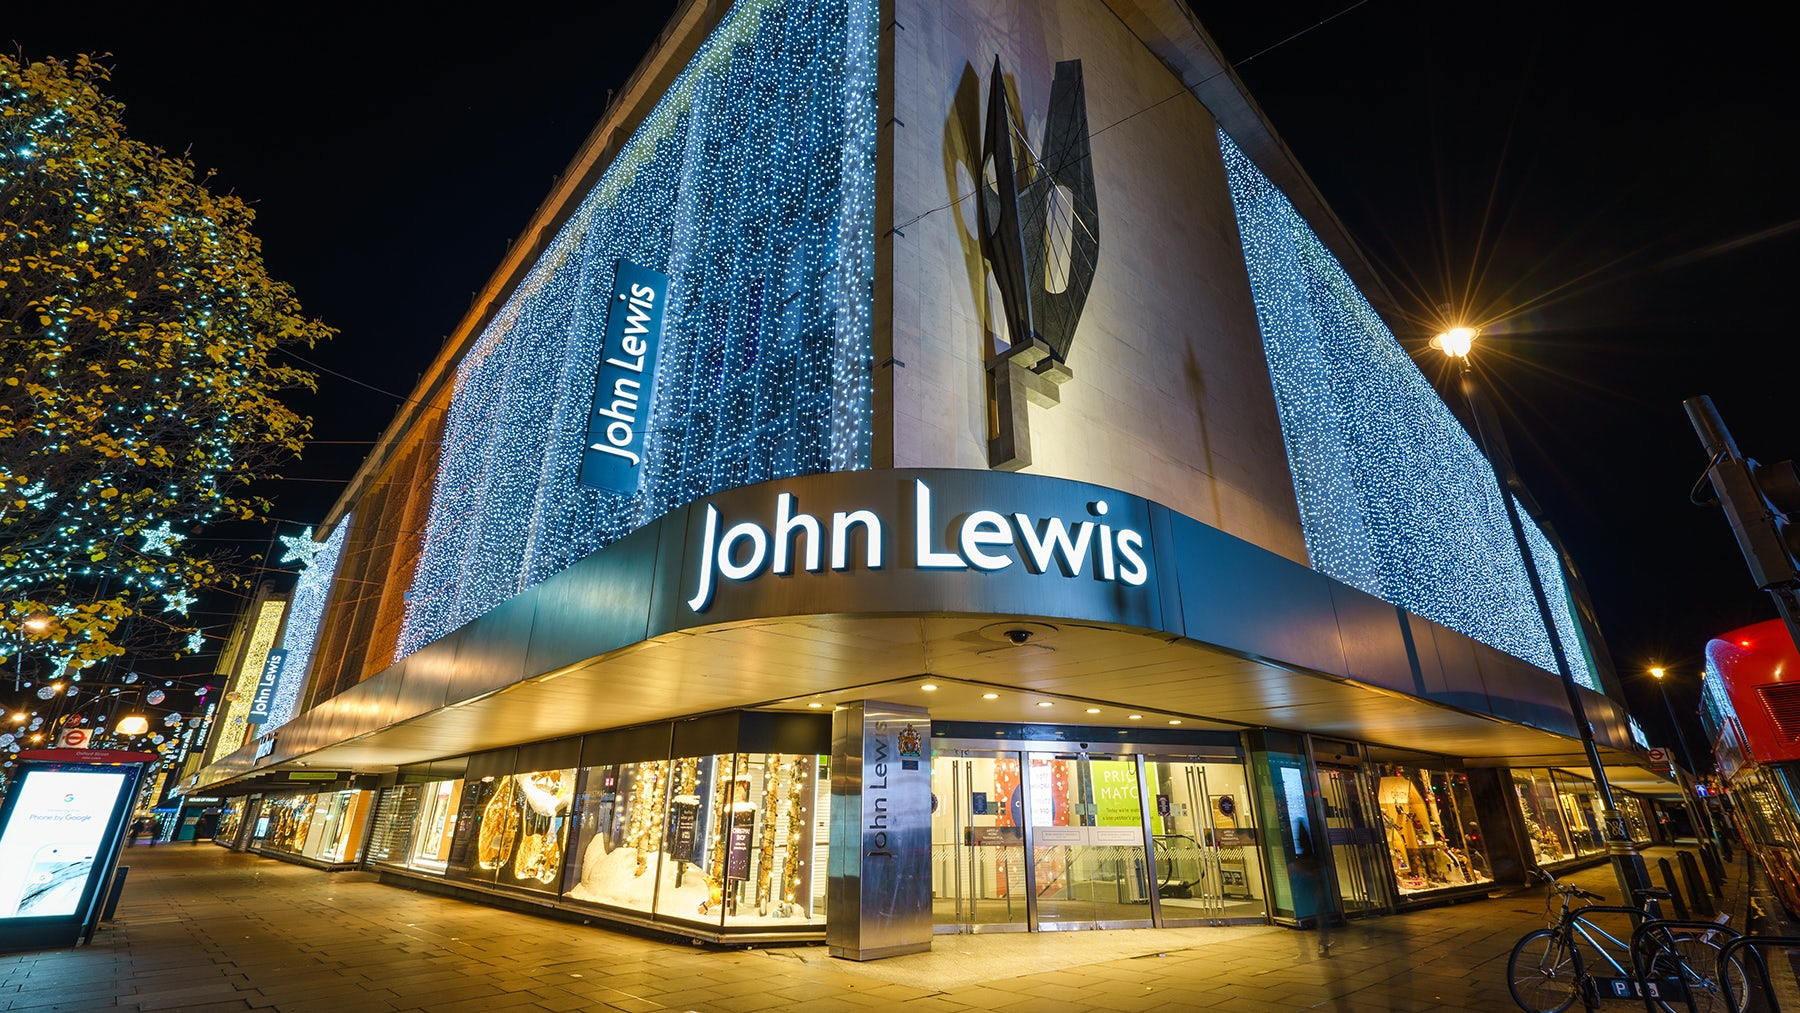 John Lewis department store | Source: Shutterstock